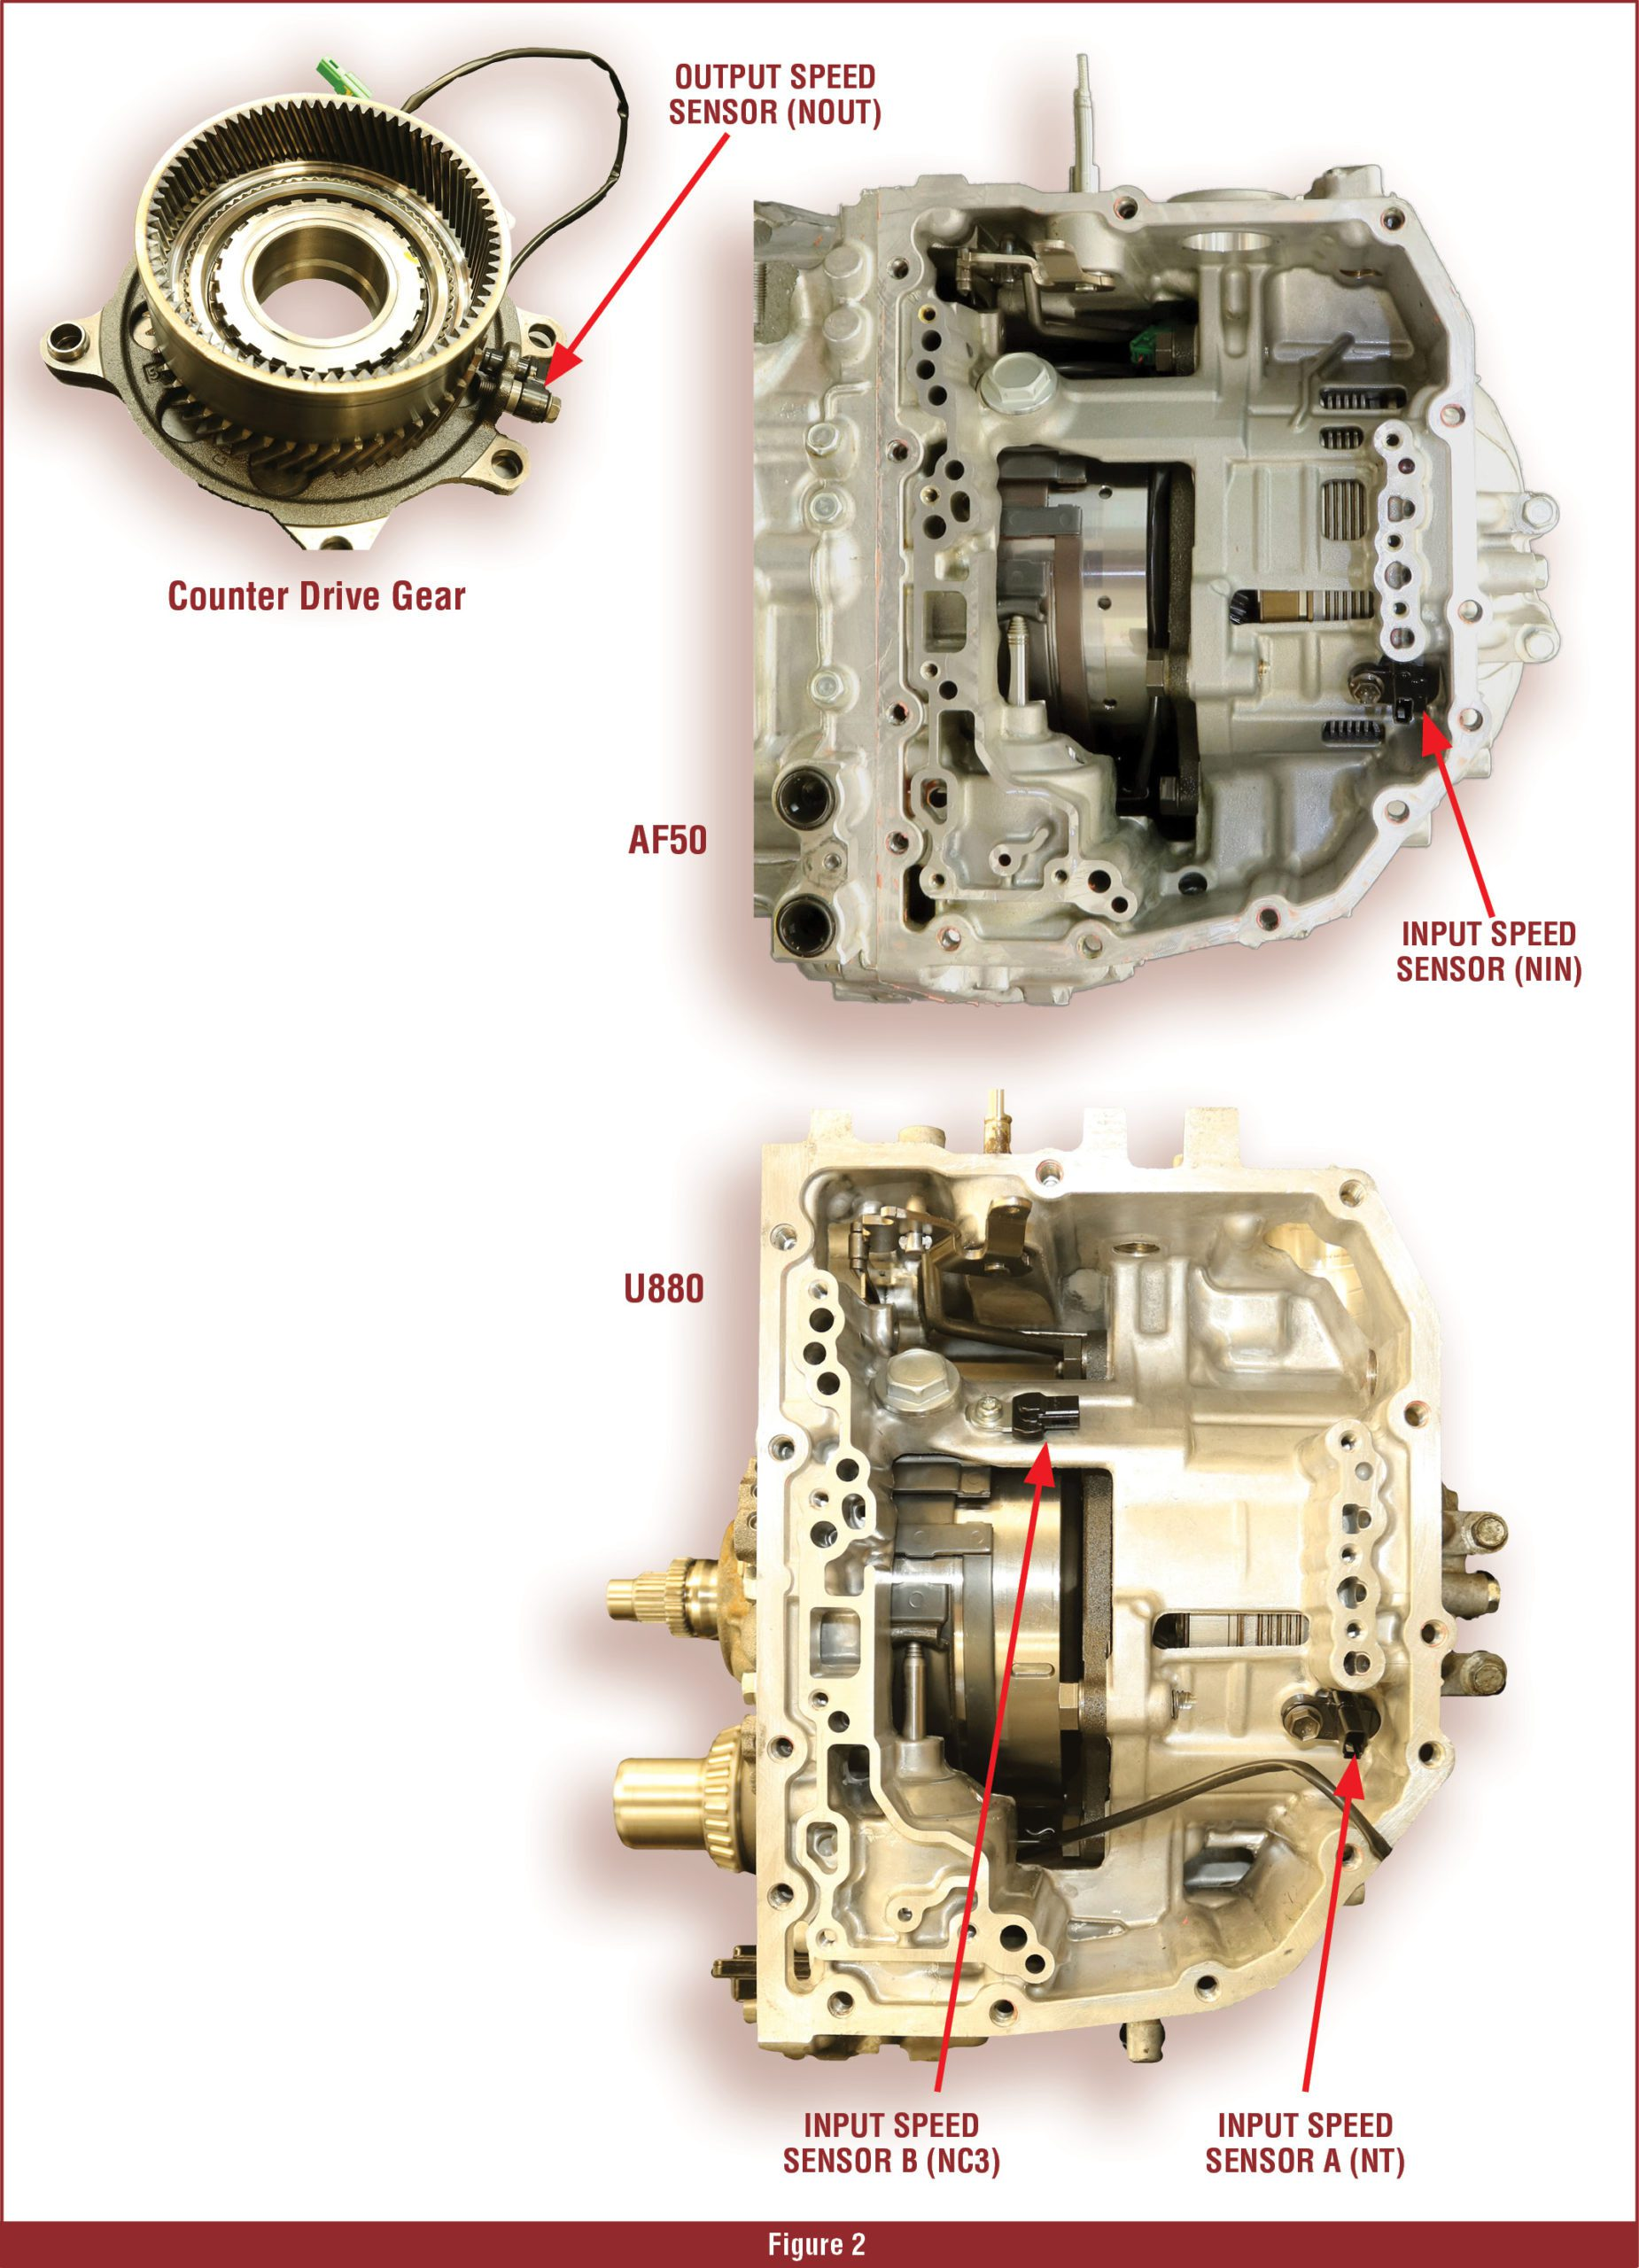 Gears Magazine | GM's AF50 8-Speed vs  Toyota's U880 8-Speed: The